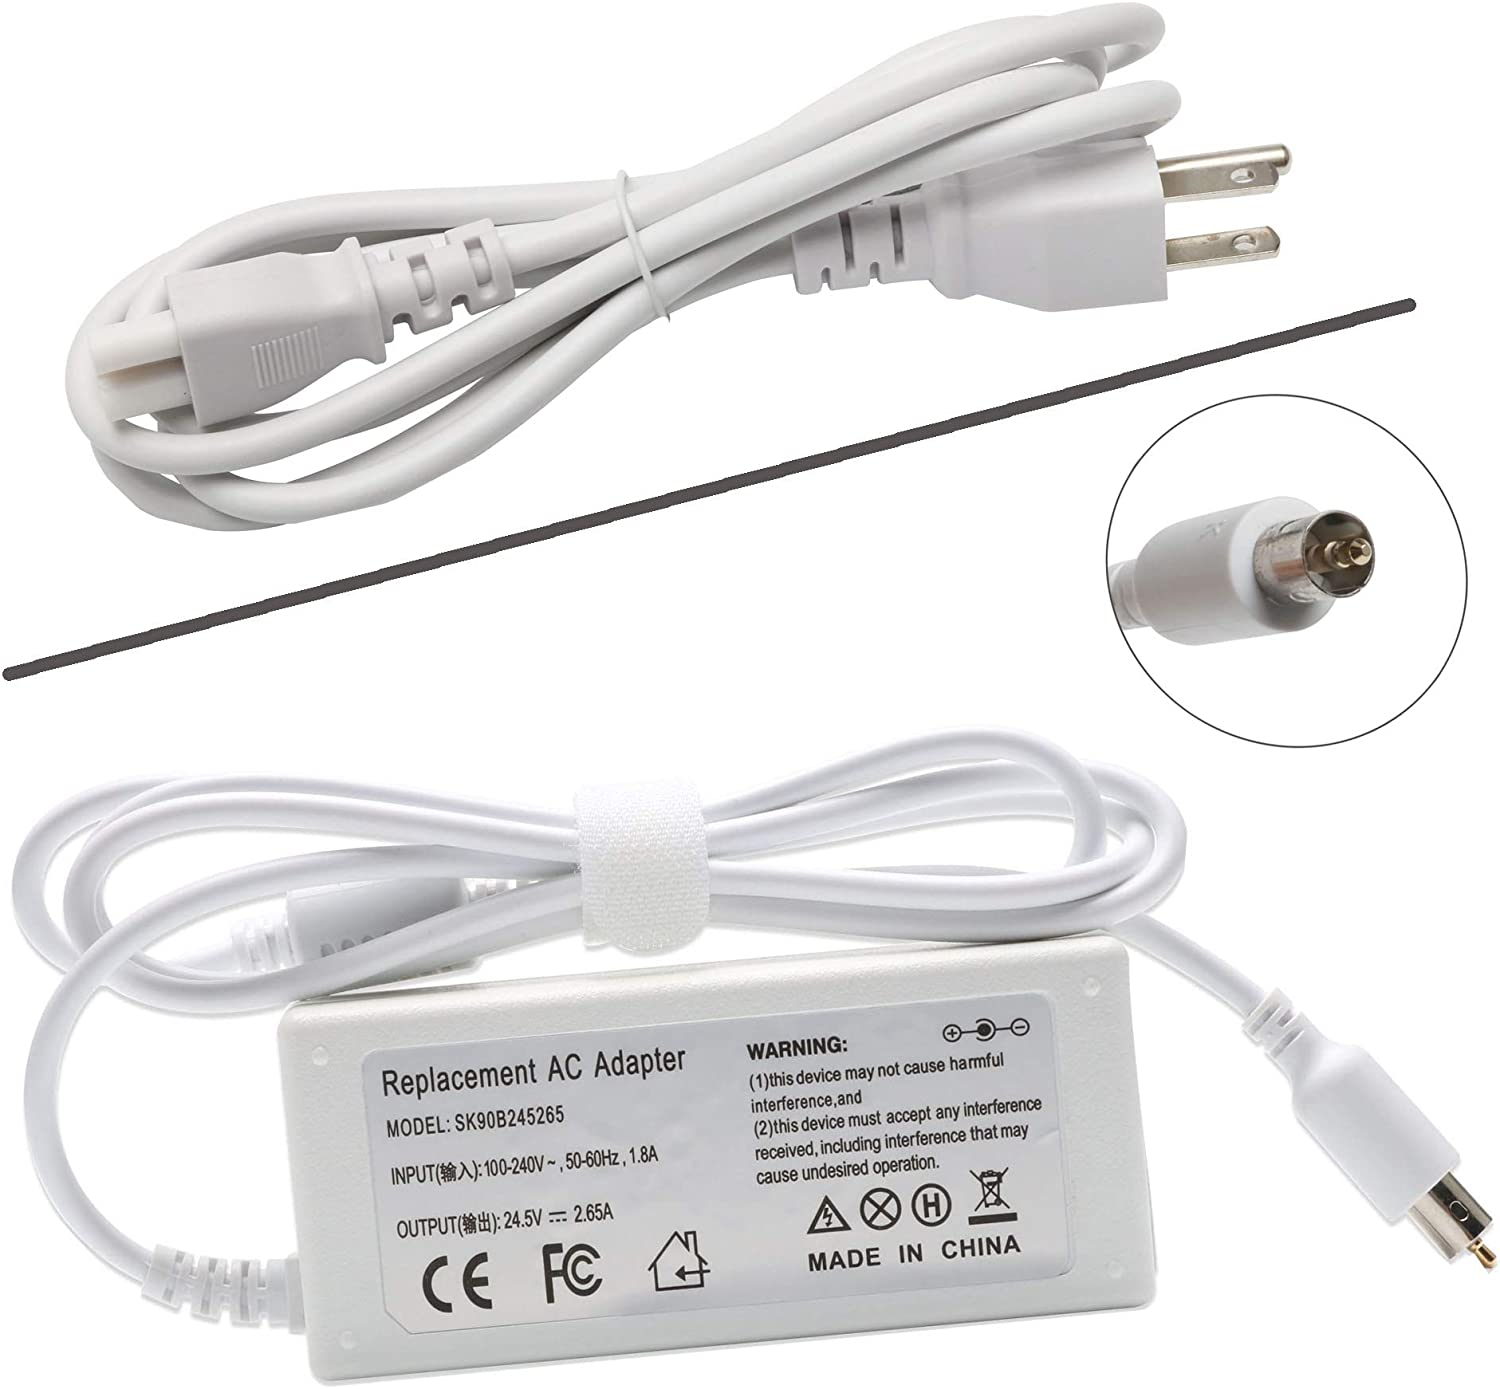 24.5V 2.65A 65W Replacement Ac Laptop Adapter Charger Replacement for Apple Powerbook G4,iBook,iBook G4,White